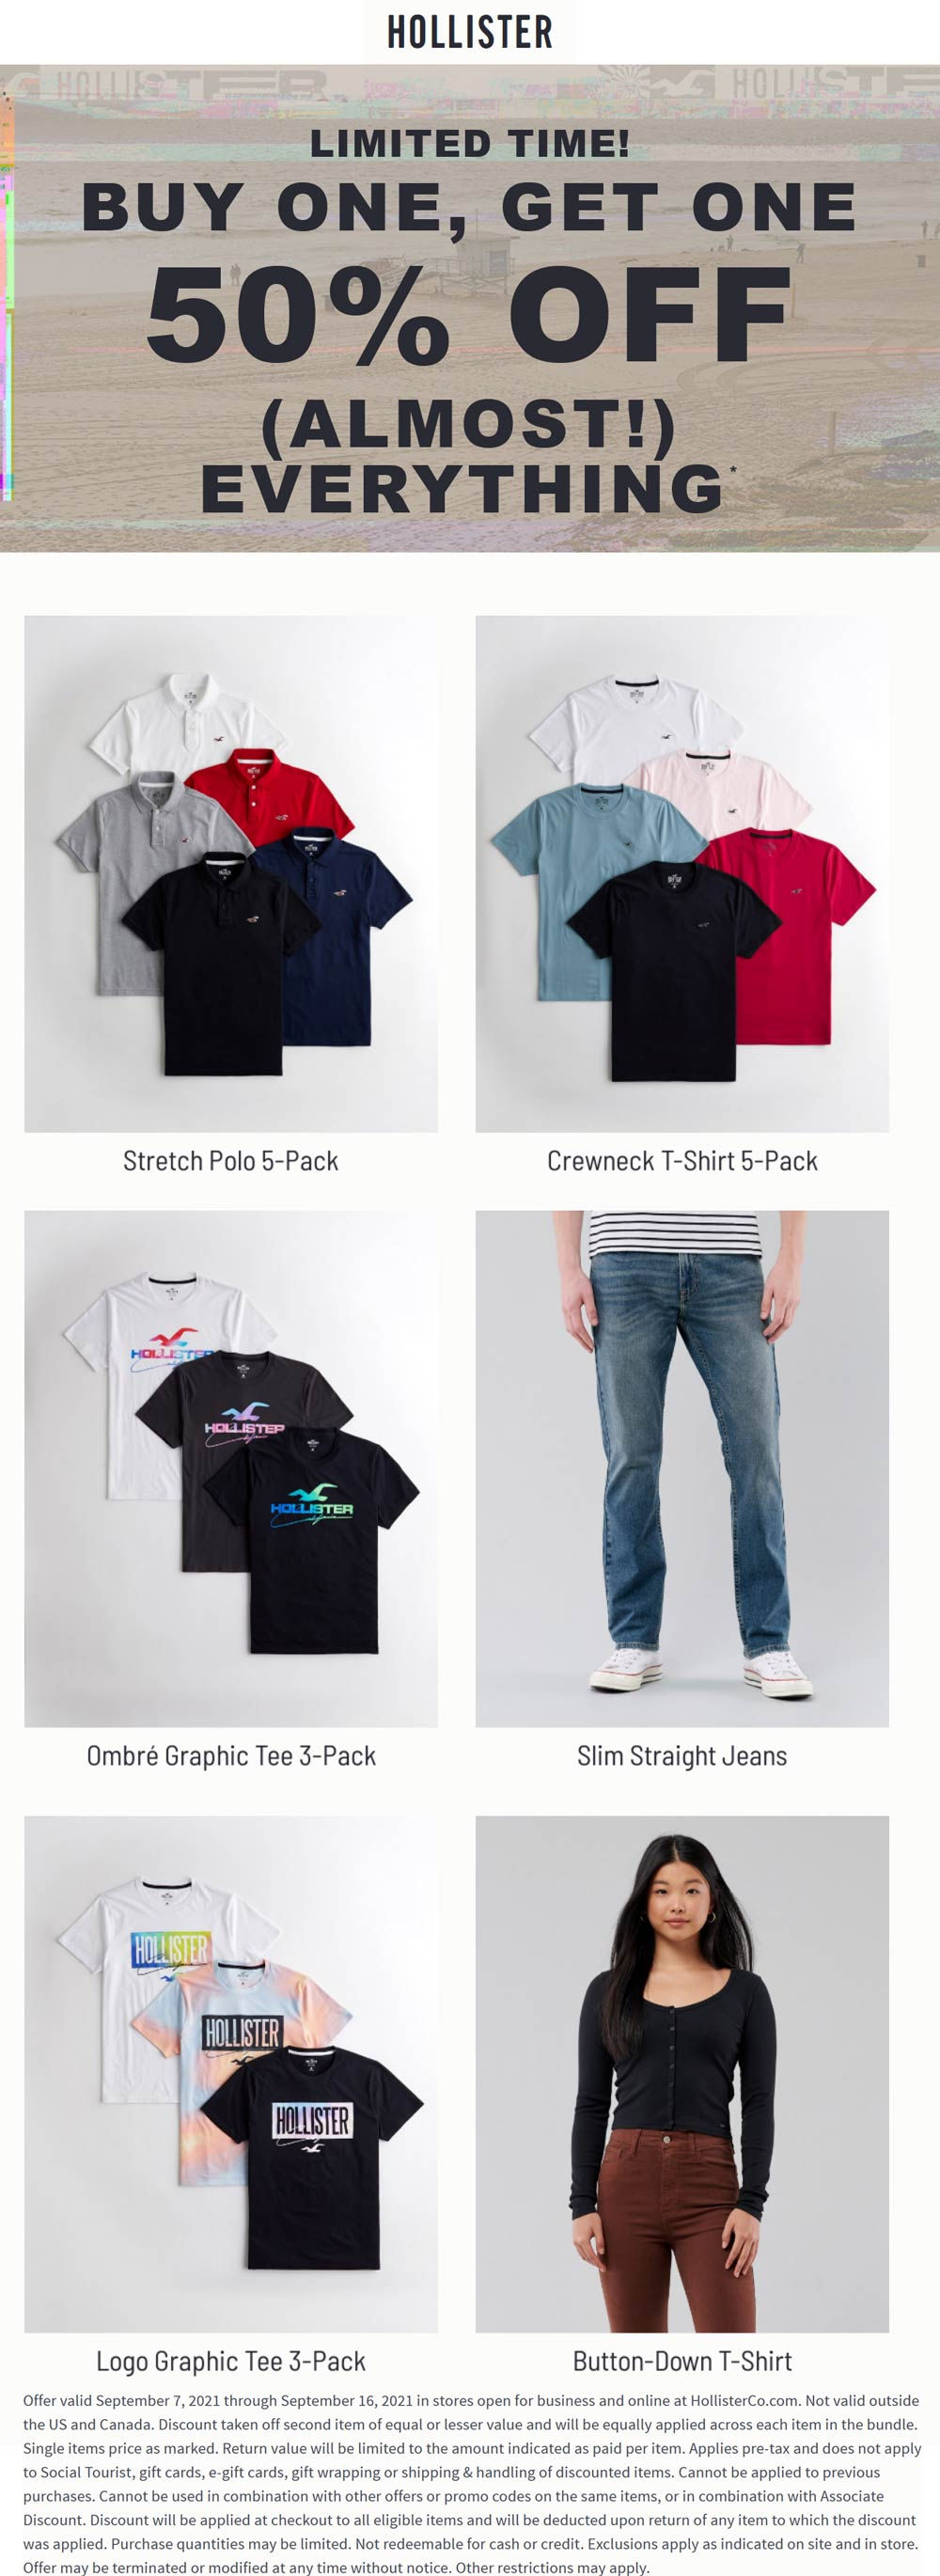 Hollister stores Coupon  Second item 50% off at Hollister, ditto online #hollister